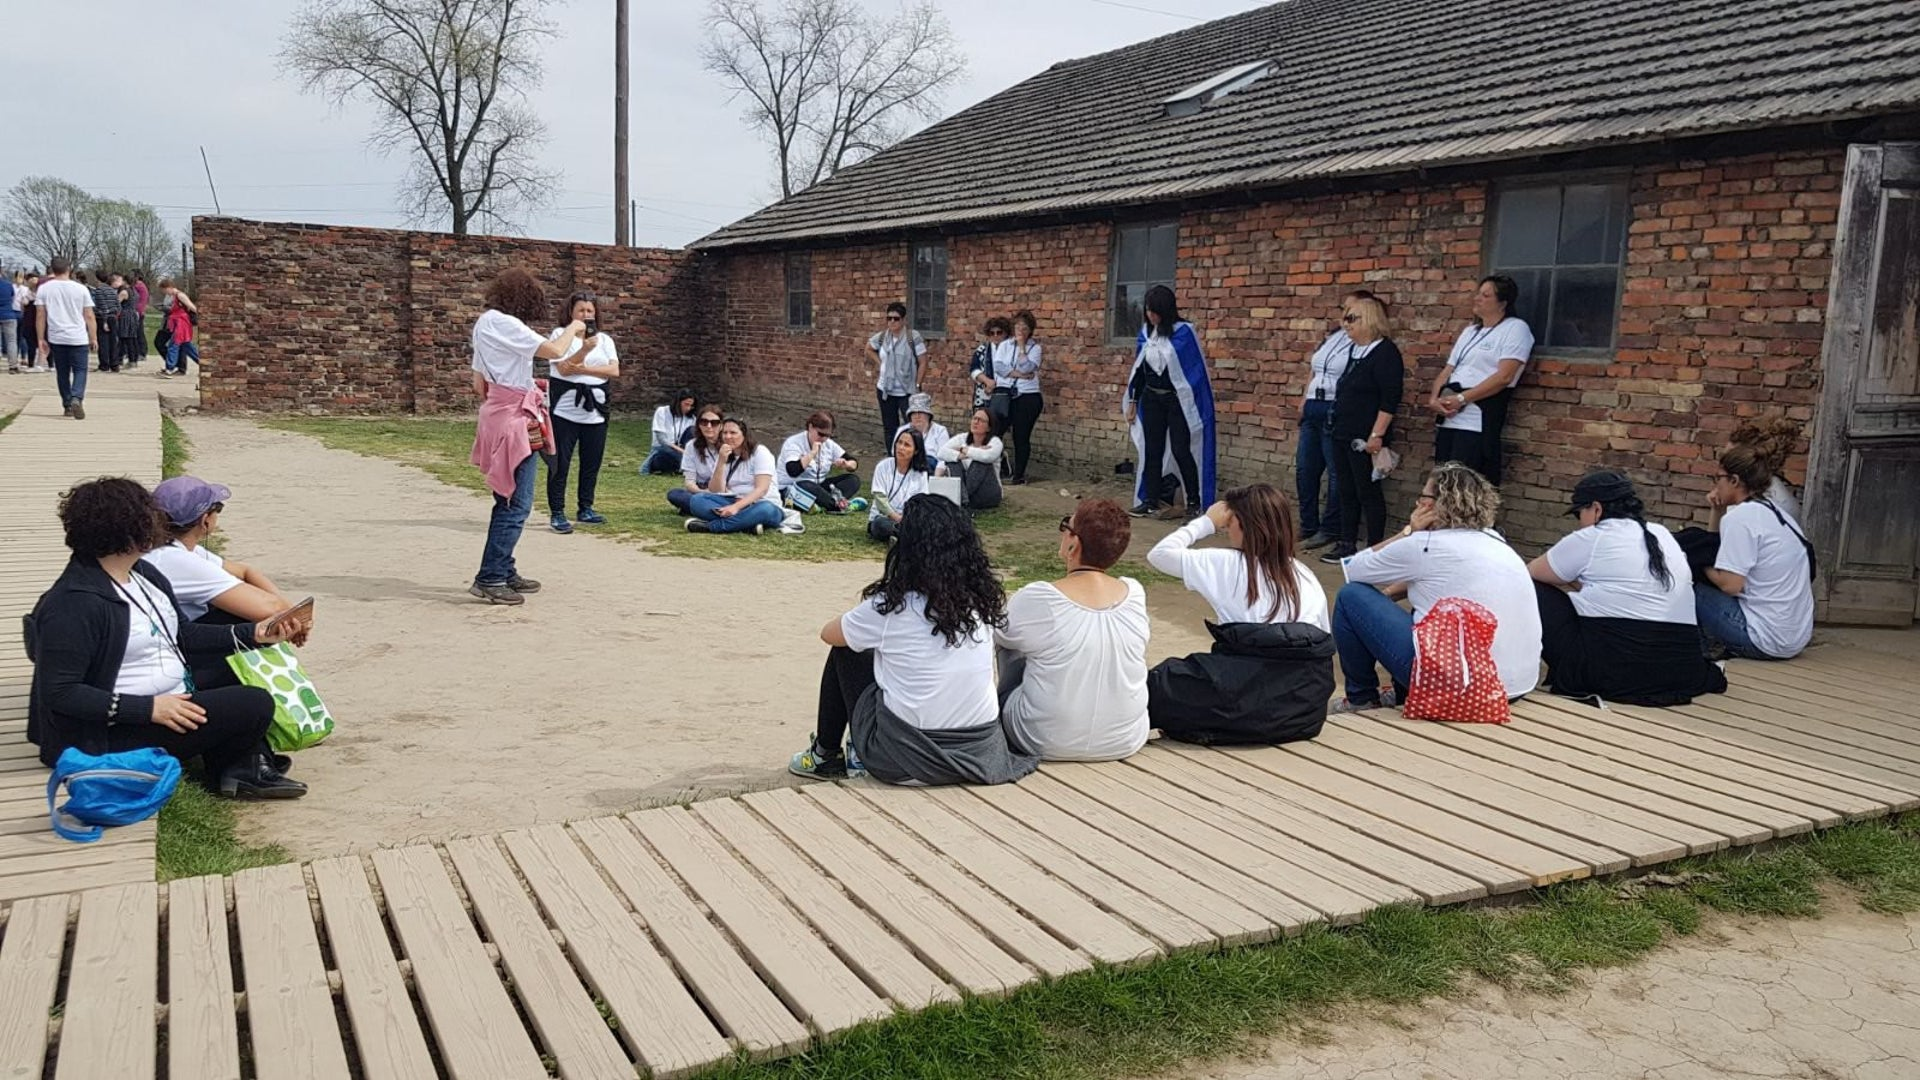 Members of the Our Sisters We Do Seek group visiting Auschwitz-Birkenau concentration camp, April 2018.